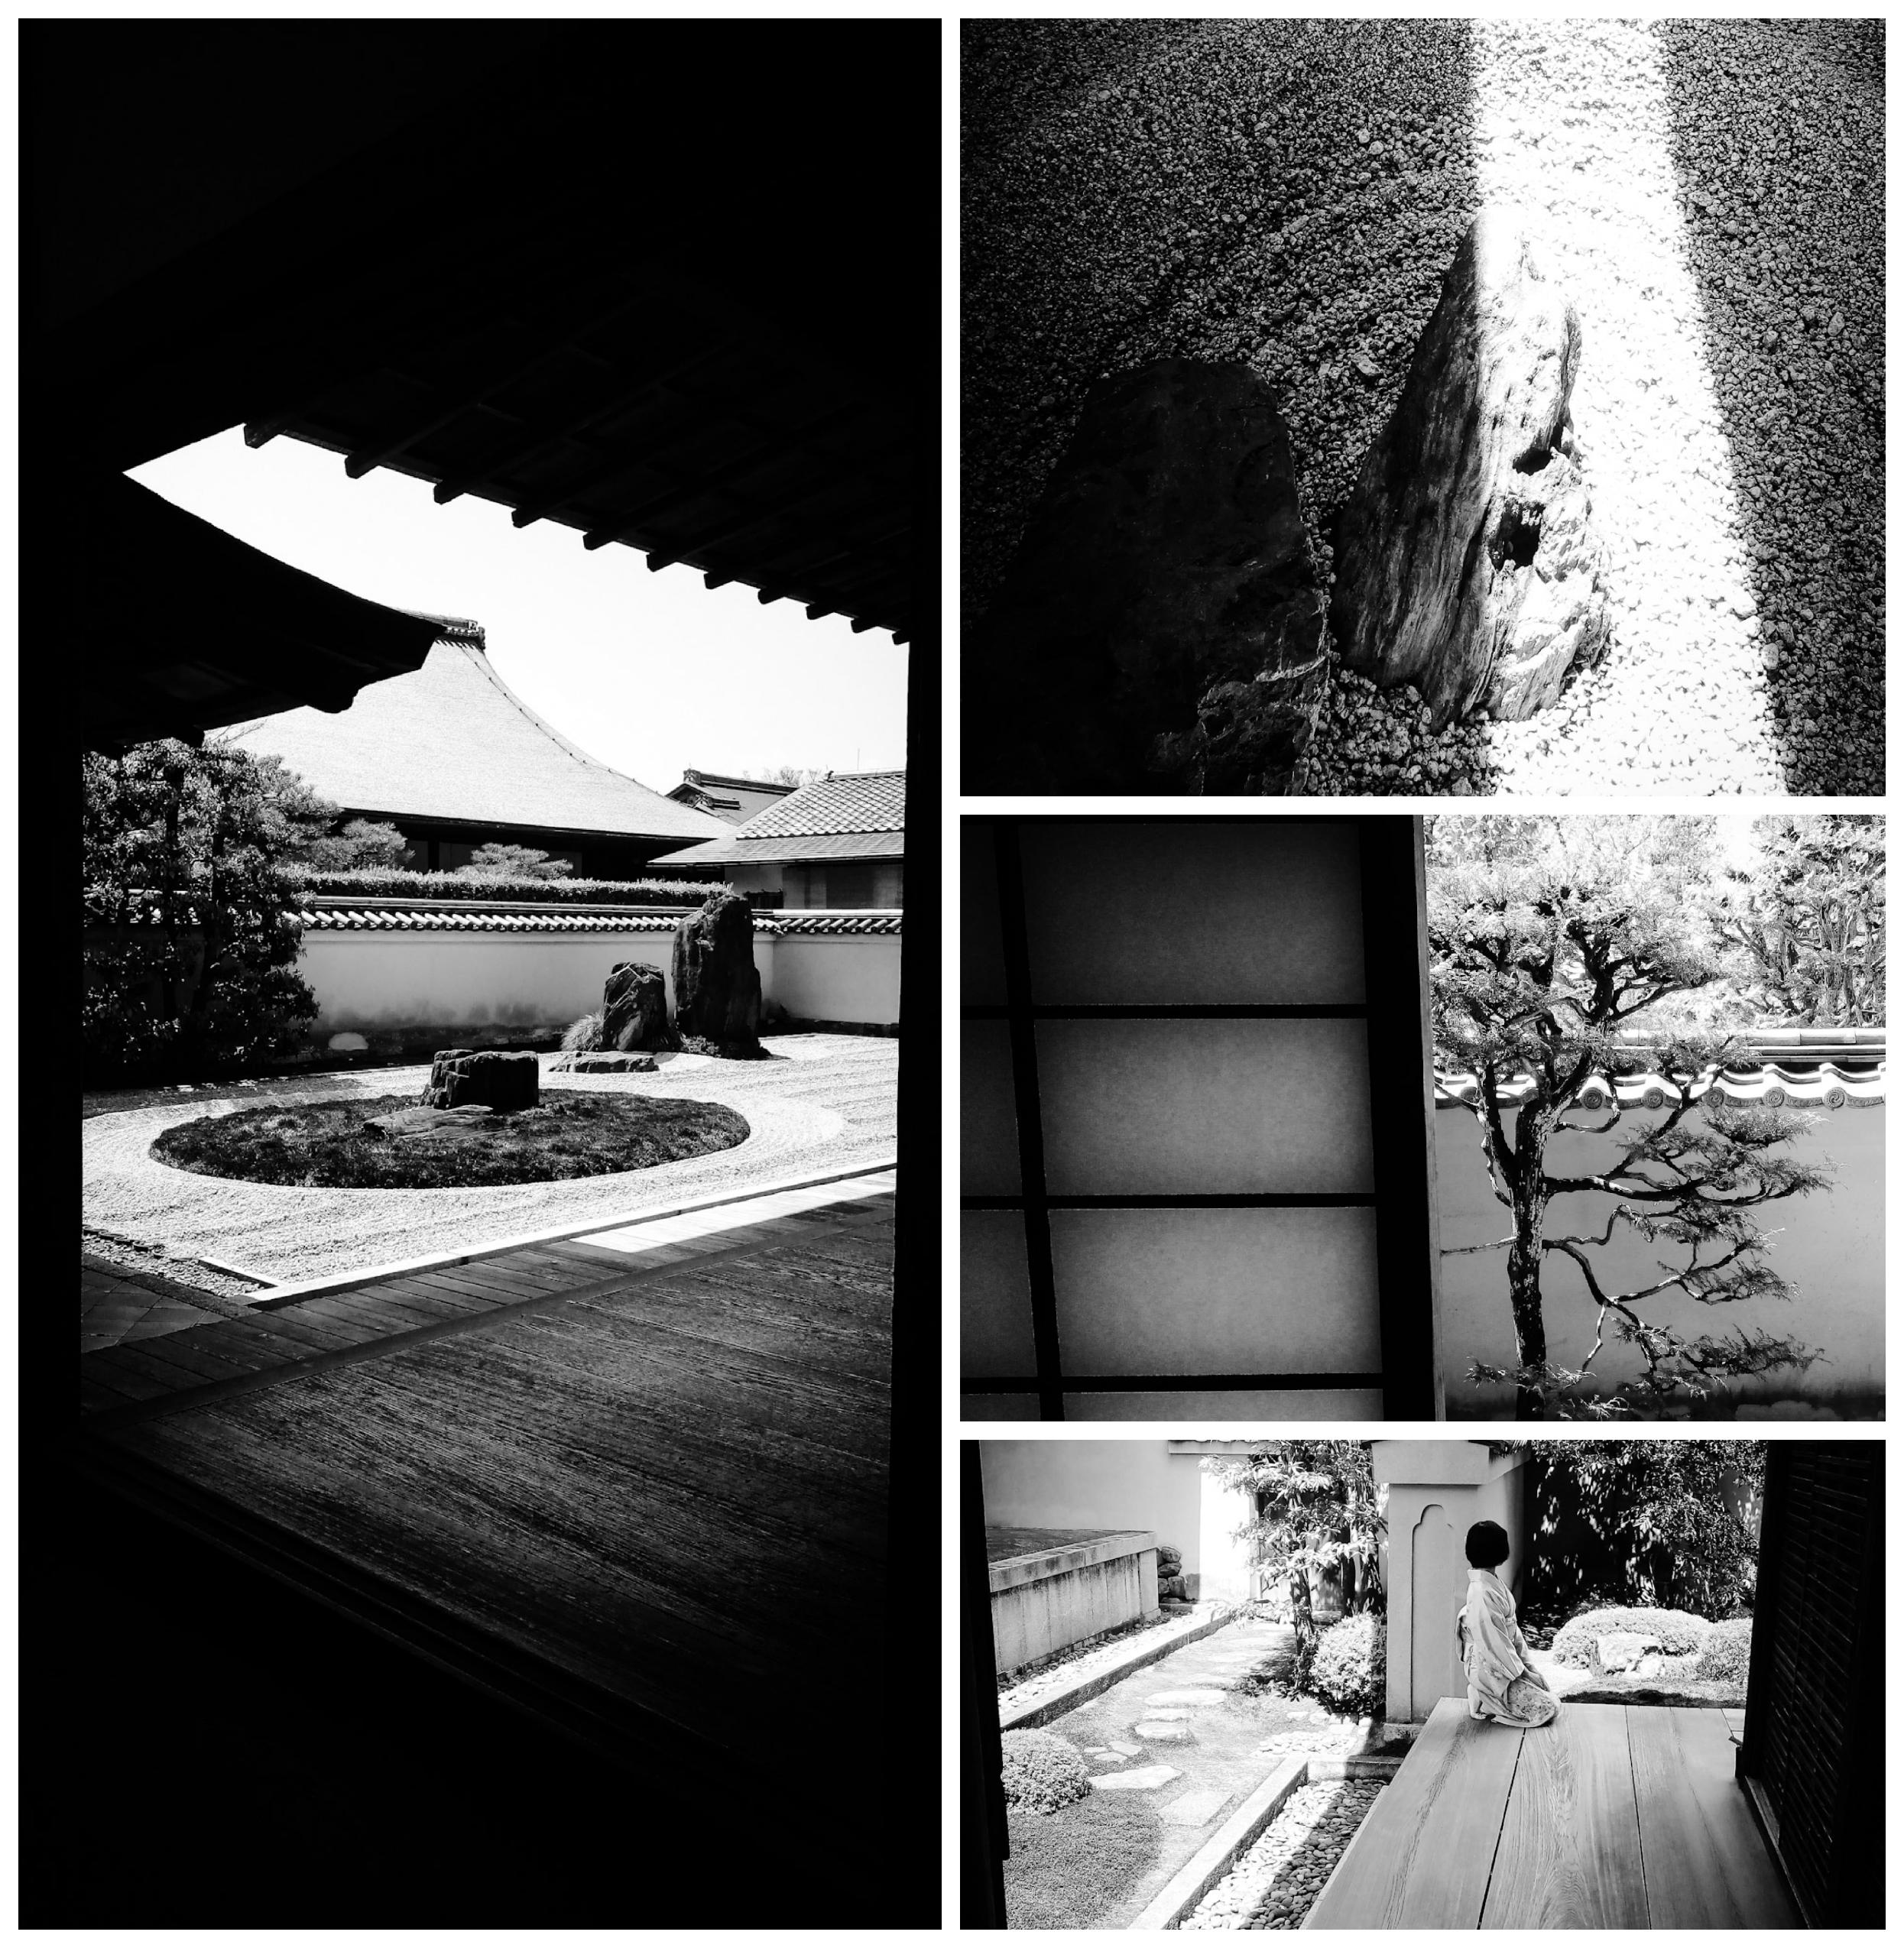 Urban photos - Murasakino, Kyoto, Japan.'Ryogen-in Temple.' Located inside the Daitokuji Temple complex, the Ryogen-in Temple dates back 1502. The temple is home to five gardens, including the Isshidan (a stunning stone garden), Ryogintei (a moss garden said to have designed by famed landscape artist Soami), and Totekiko (claims to be the smallest Kare-sansui). sketchbookexplorer.com @davidasutton @sketchbookexplorer Facebook.com/davidanthonysutton #japan #kyoto #kitaward #daitokuji #ryogenintemple #travel #travelblog #photography #cheeryblossom #cherryblossomseason